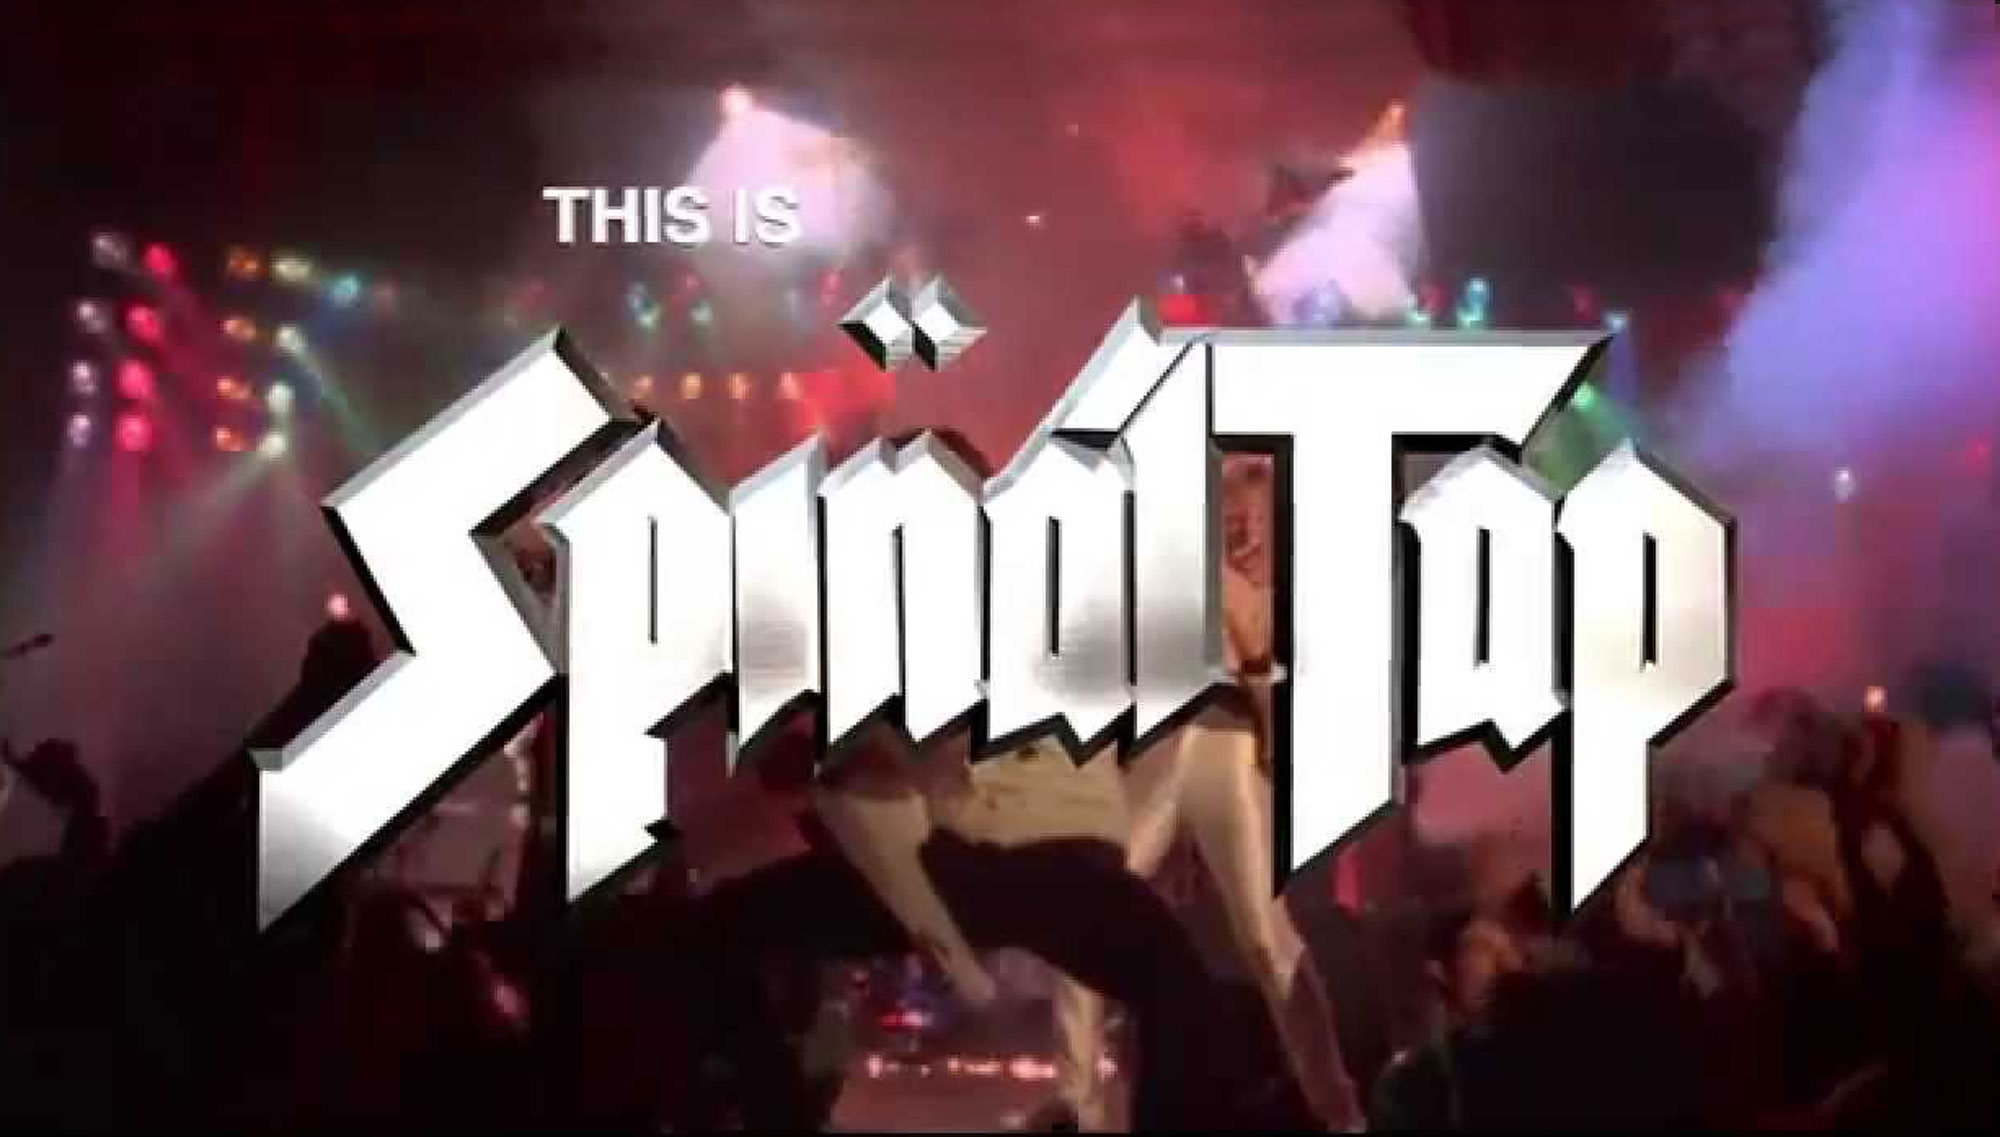 MOVIES THAT ROCK: THIS IS SPINAL TAP  <h6>1 hr 22 mins - 1984   </h6><H5>MARCH 23  </h5>